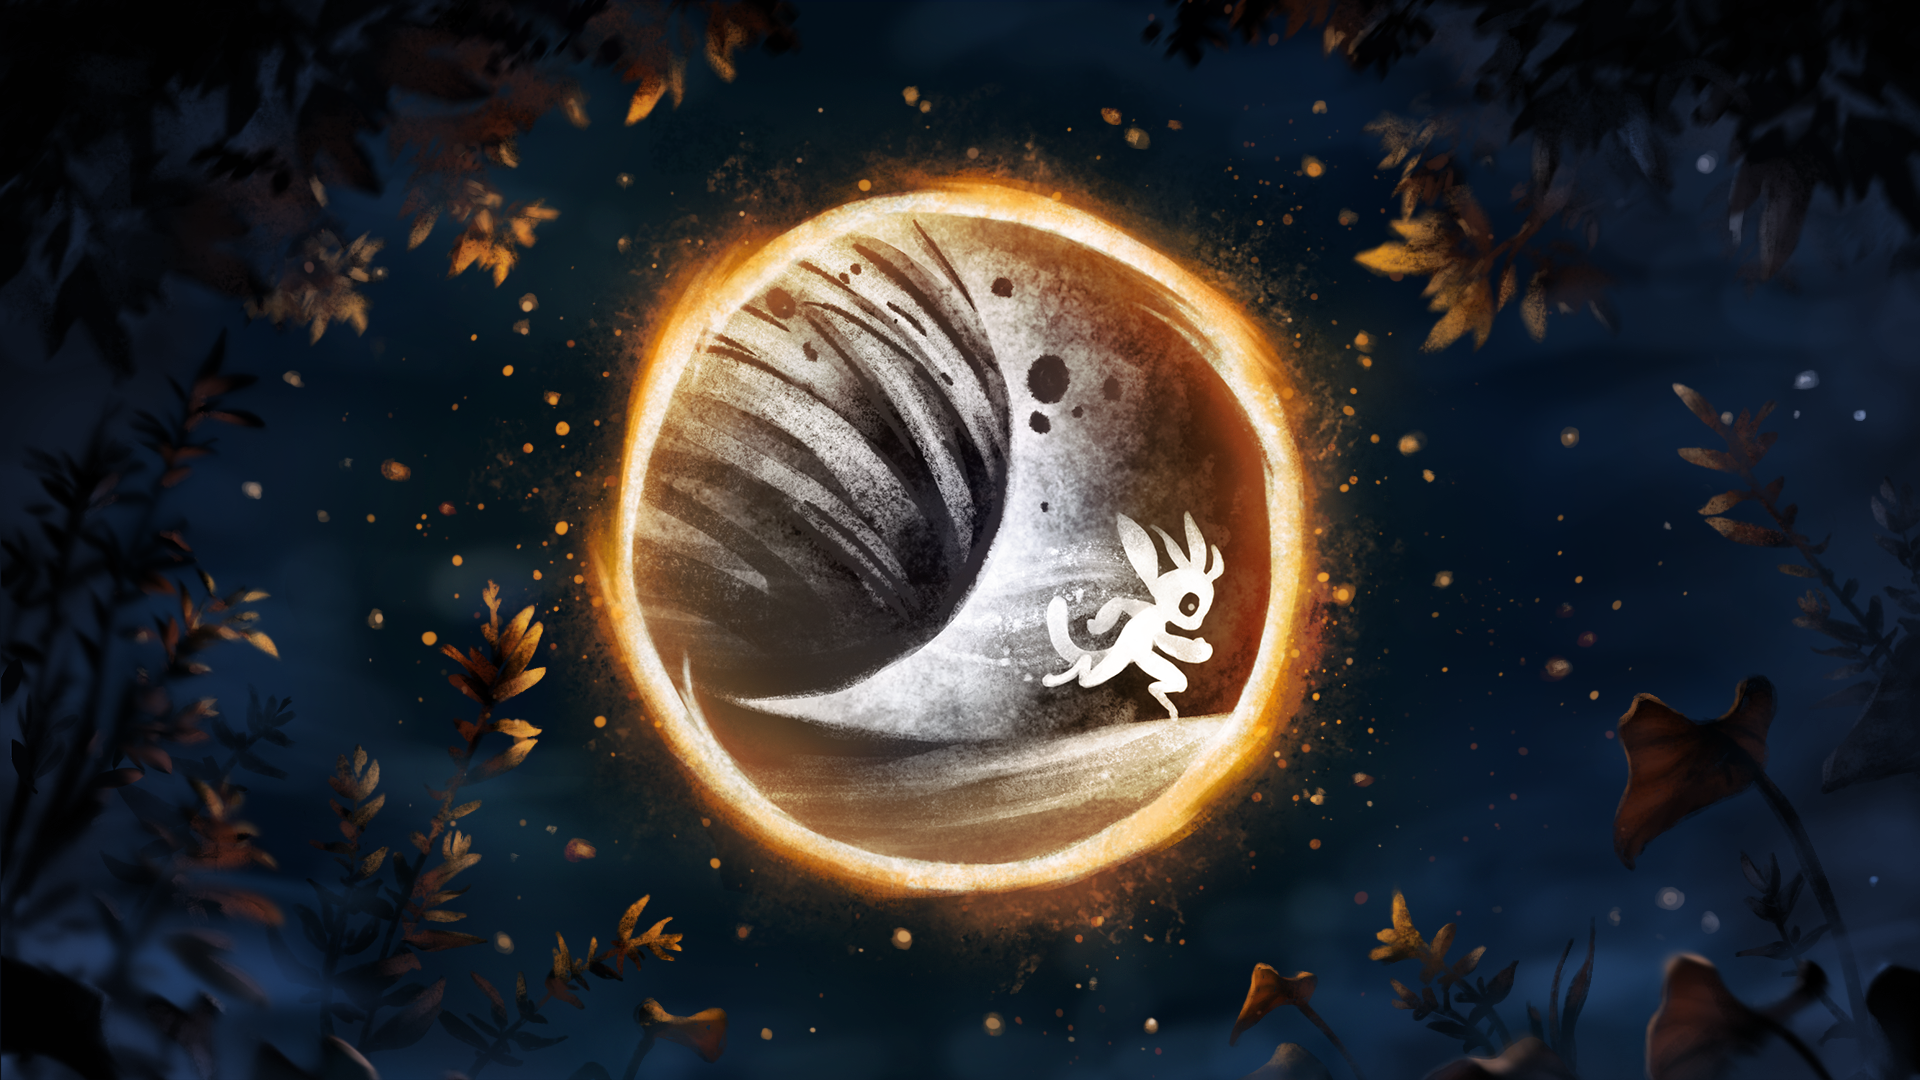 Raider Run achievement for Ori and the Blind Forest on Nintendo Switch